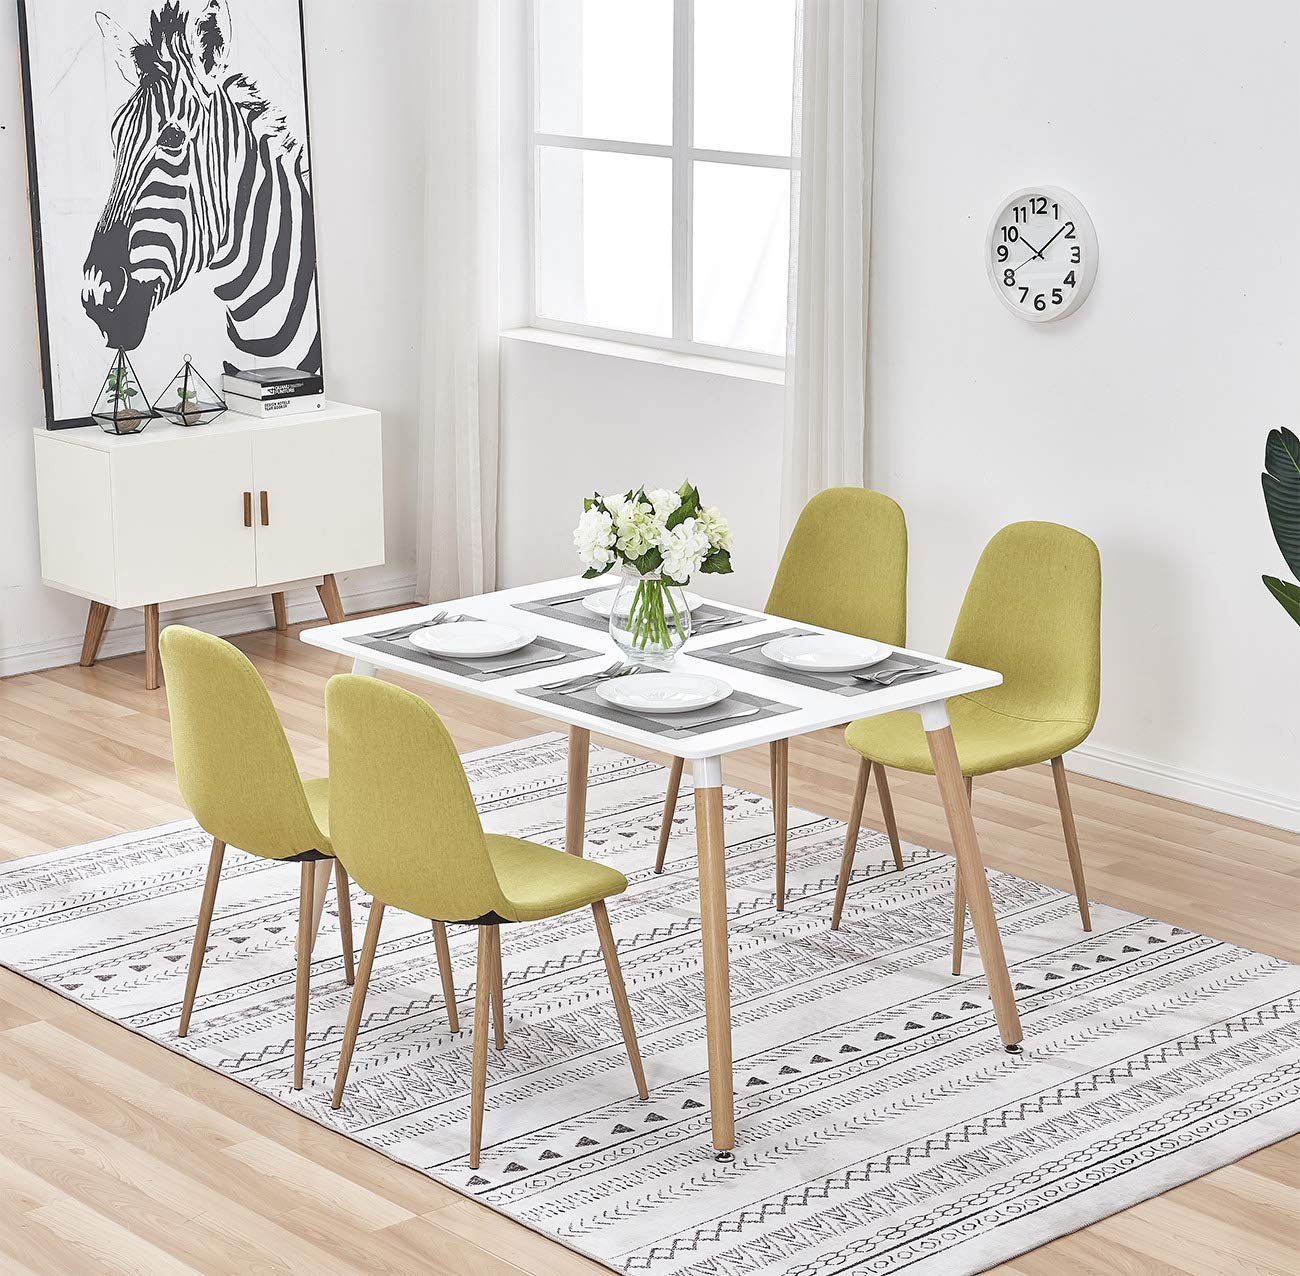 Gizza rectangular white wood dining table and 4 chairs linen fabric sturdy metal legs for dining kitchen lounge restaurant office furniture setmustard